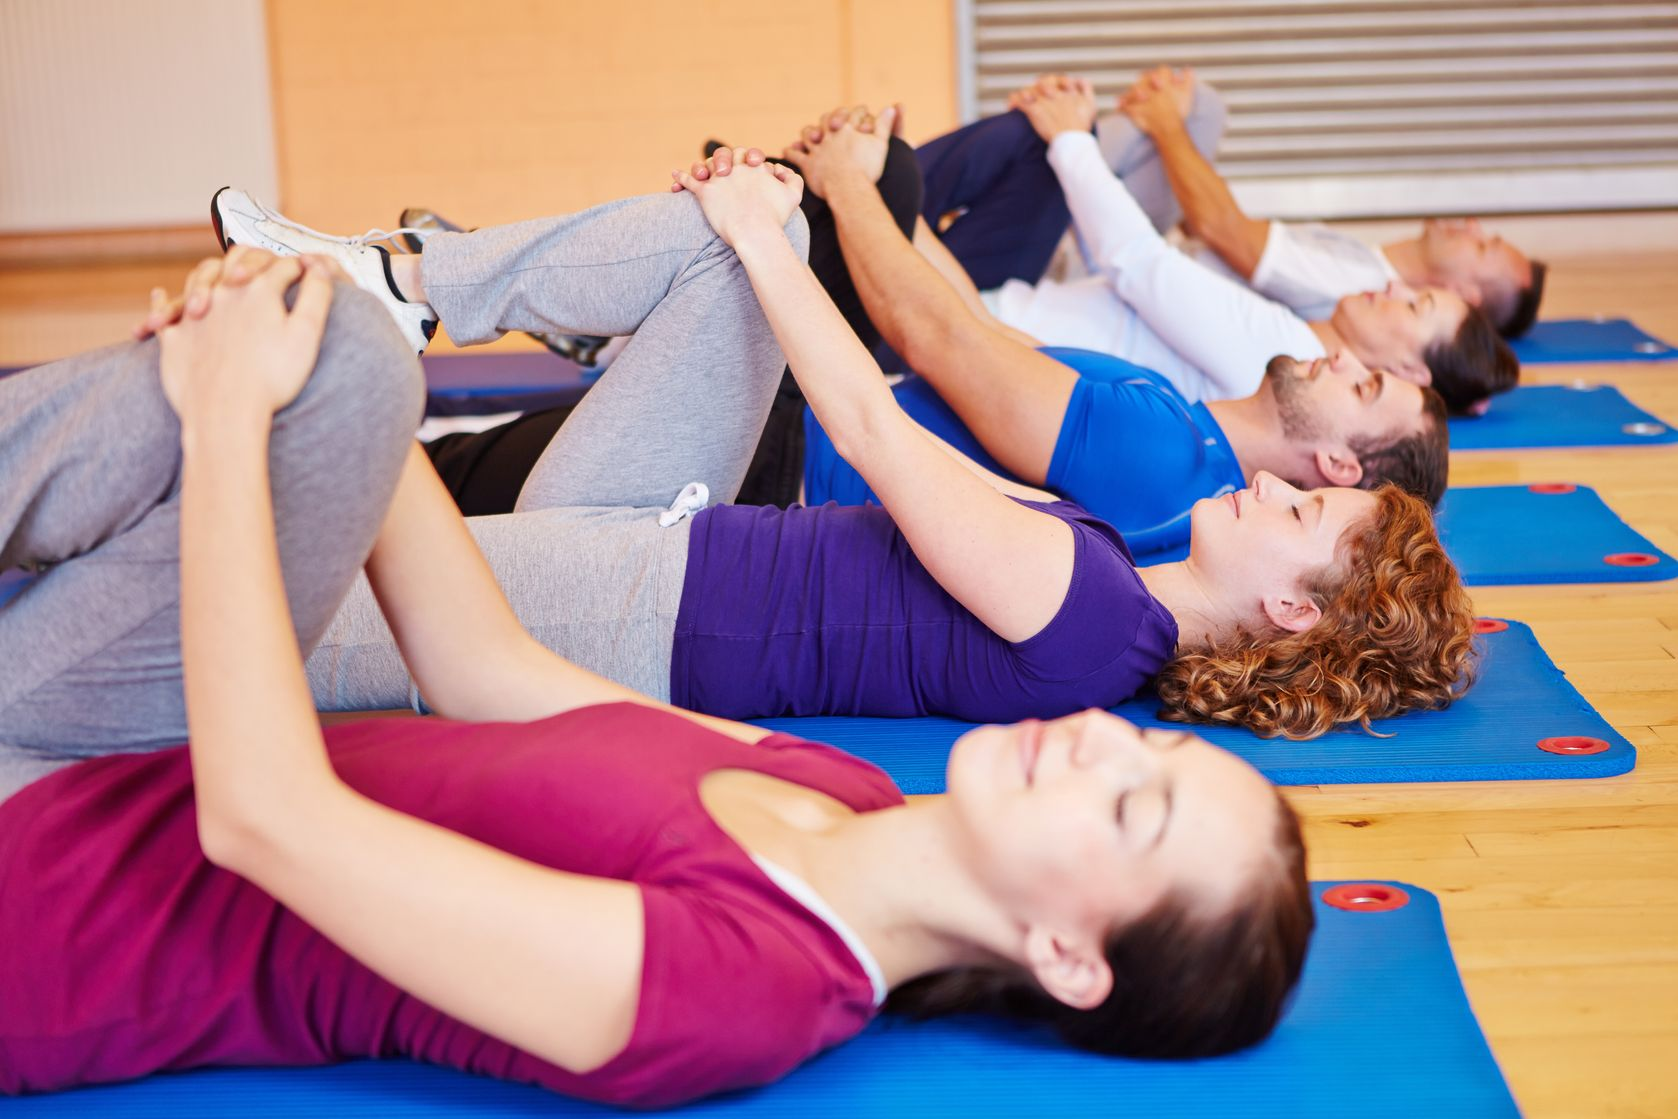 a group of 5 men and women laying on their backs holding one knee as part of a Feldenkrais exercise in a big room